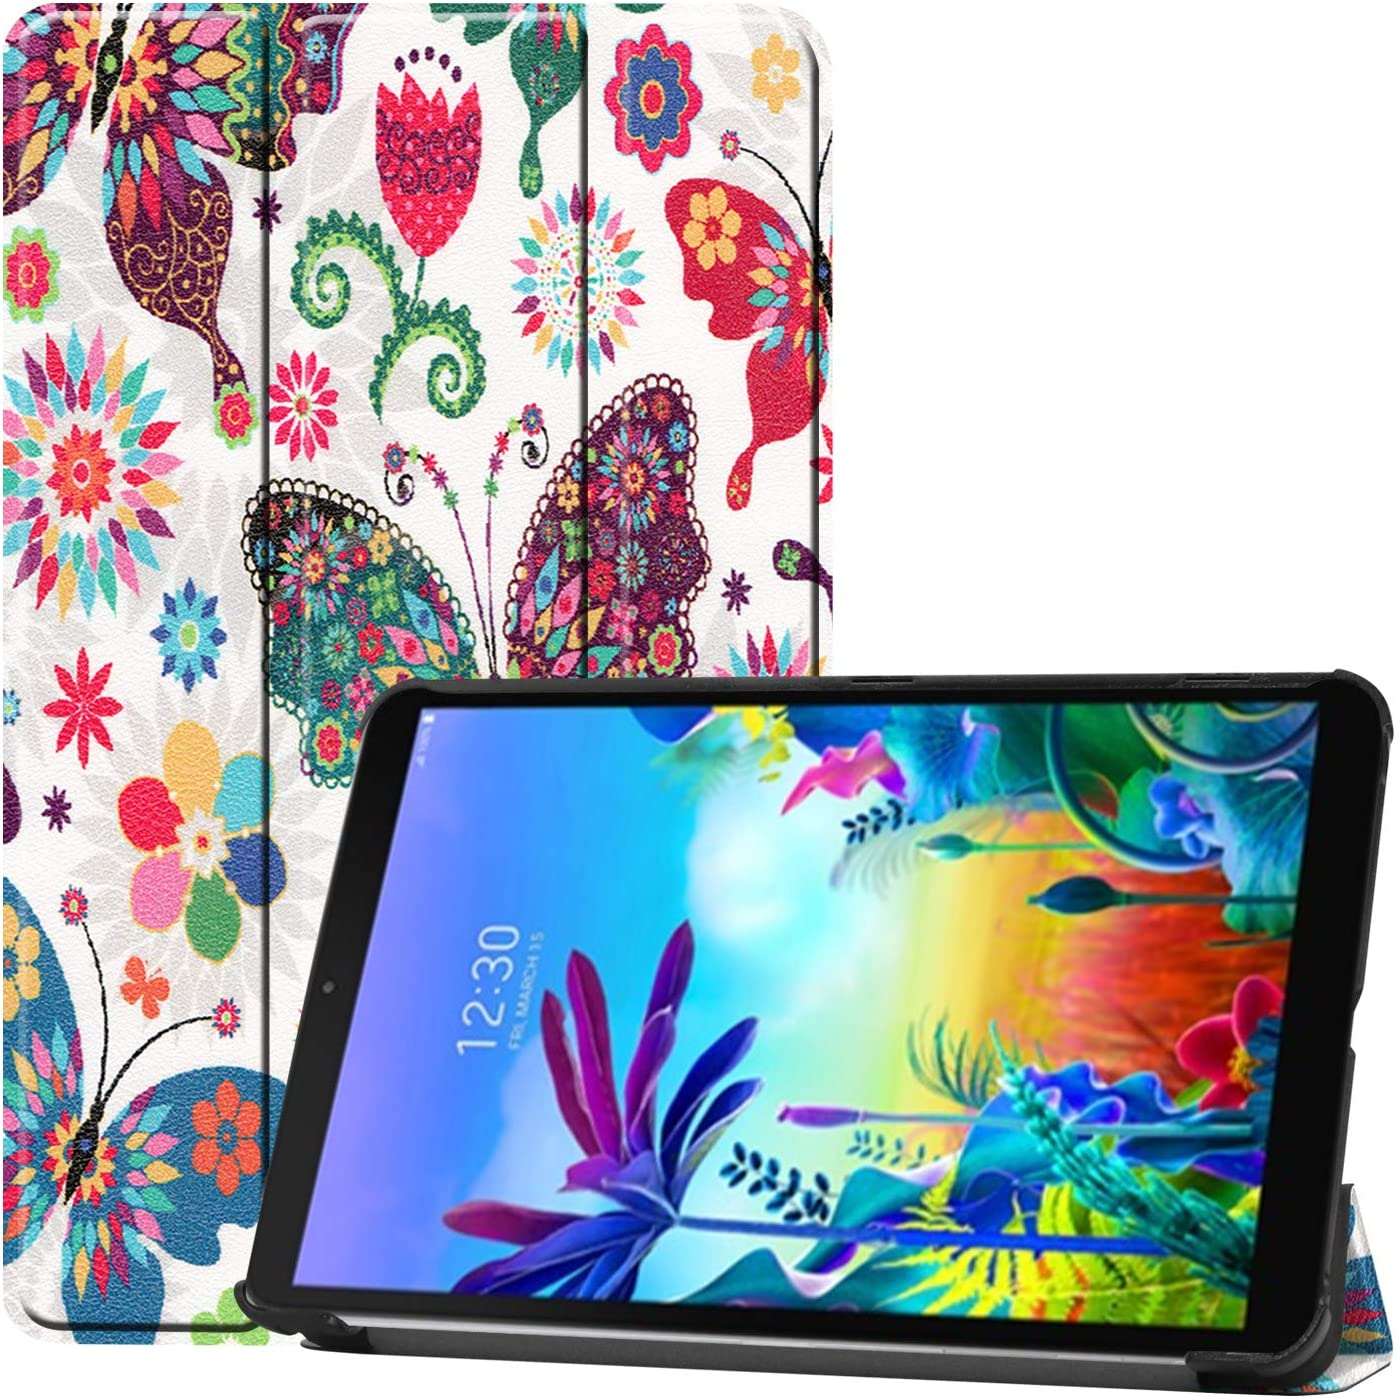 Gylint LG G Pad 5 10.1 Case, Smart Case Trifold Stand Slim Lightweight Case Cover for LG G Pad 5 10.1 Inches Tablet 2019 Release, Model:LM-T600L, T600L Butterfly